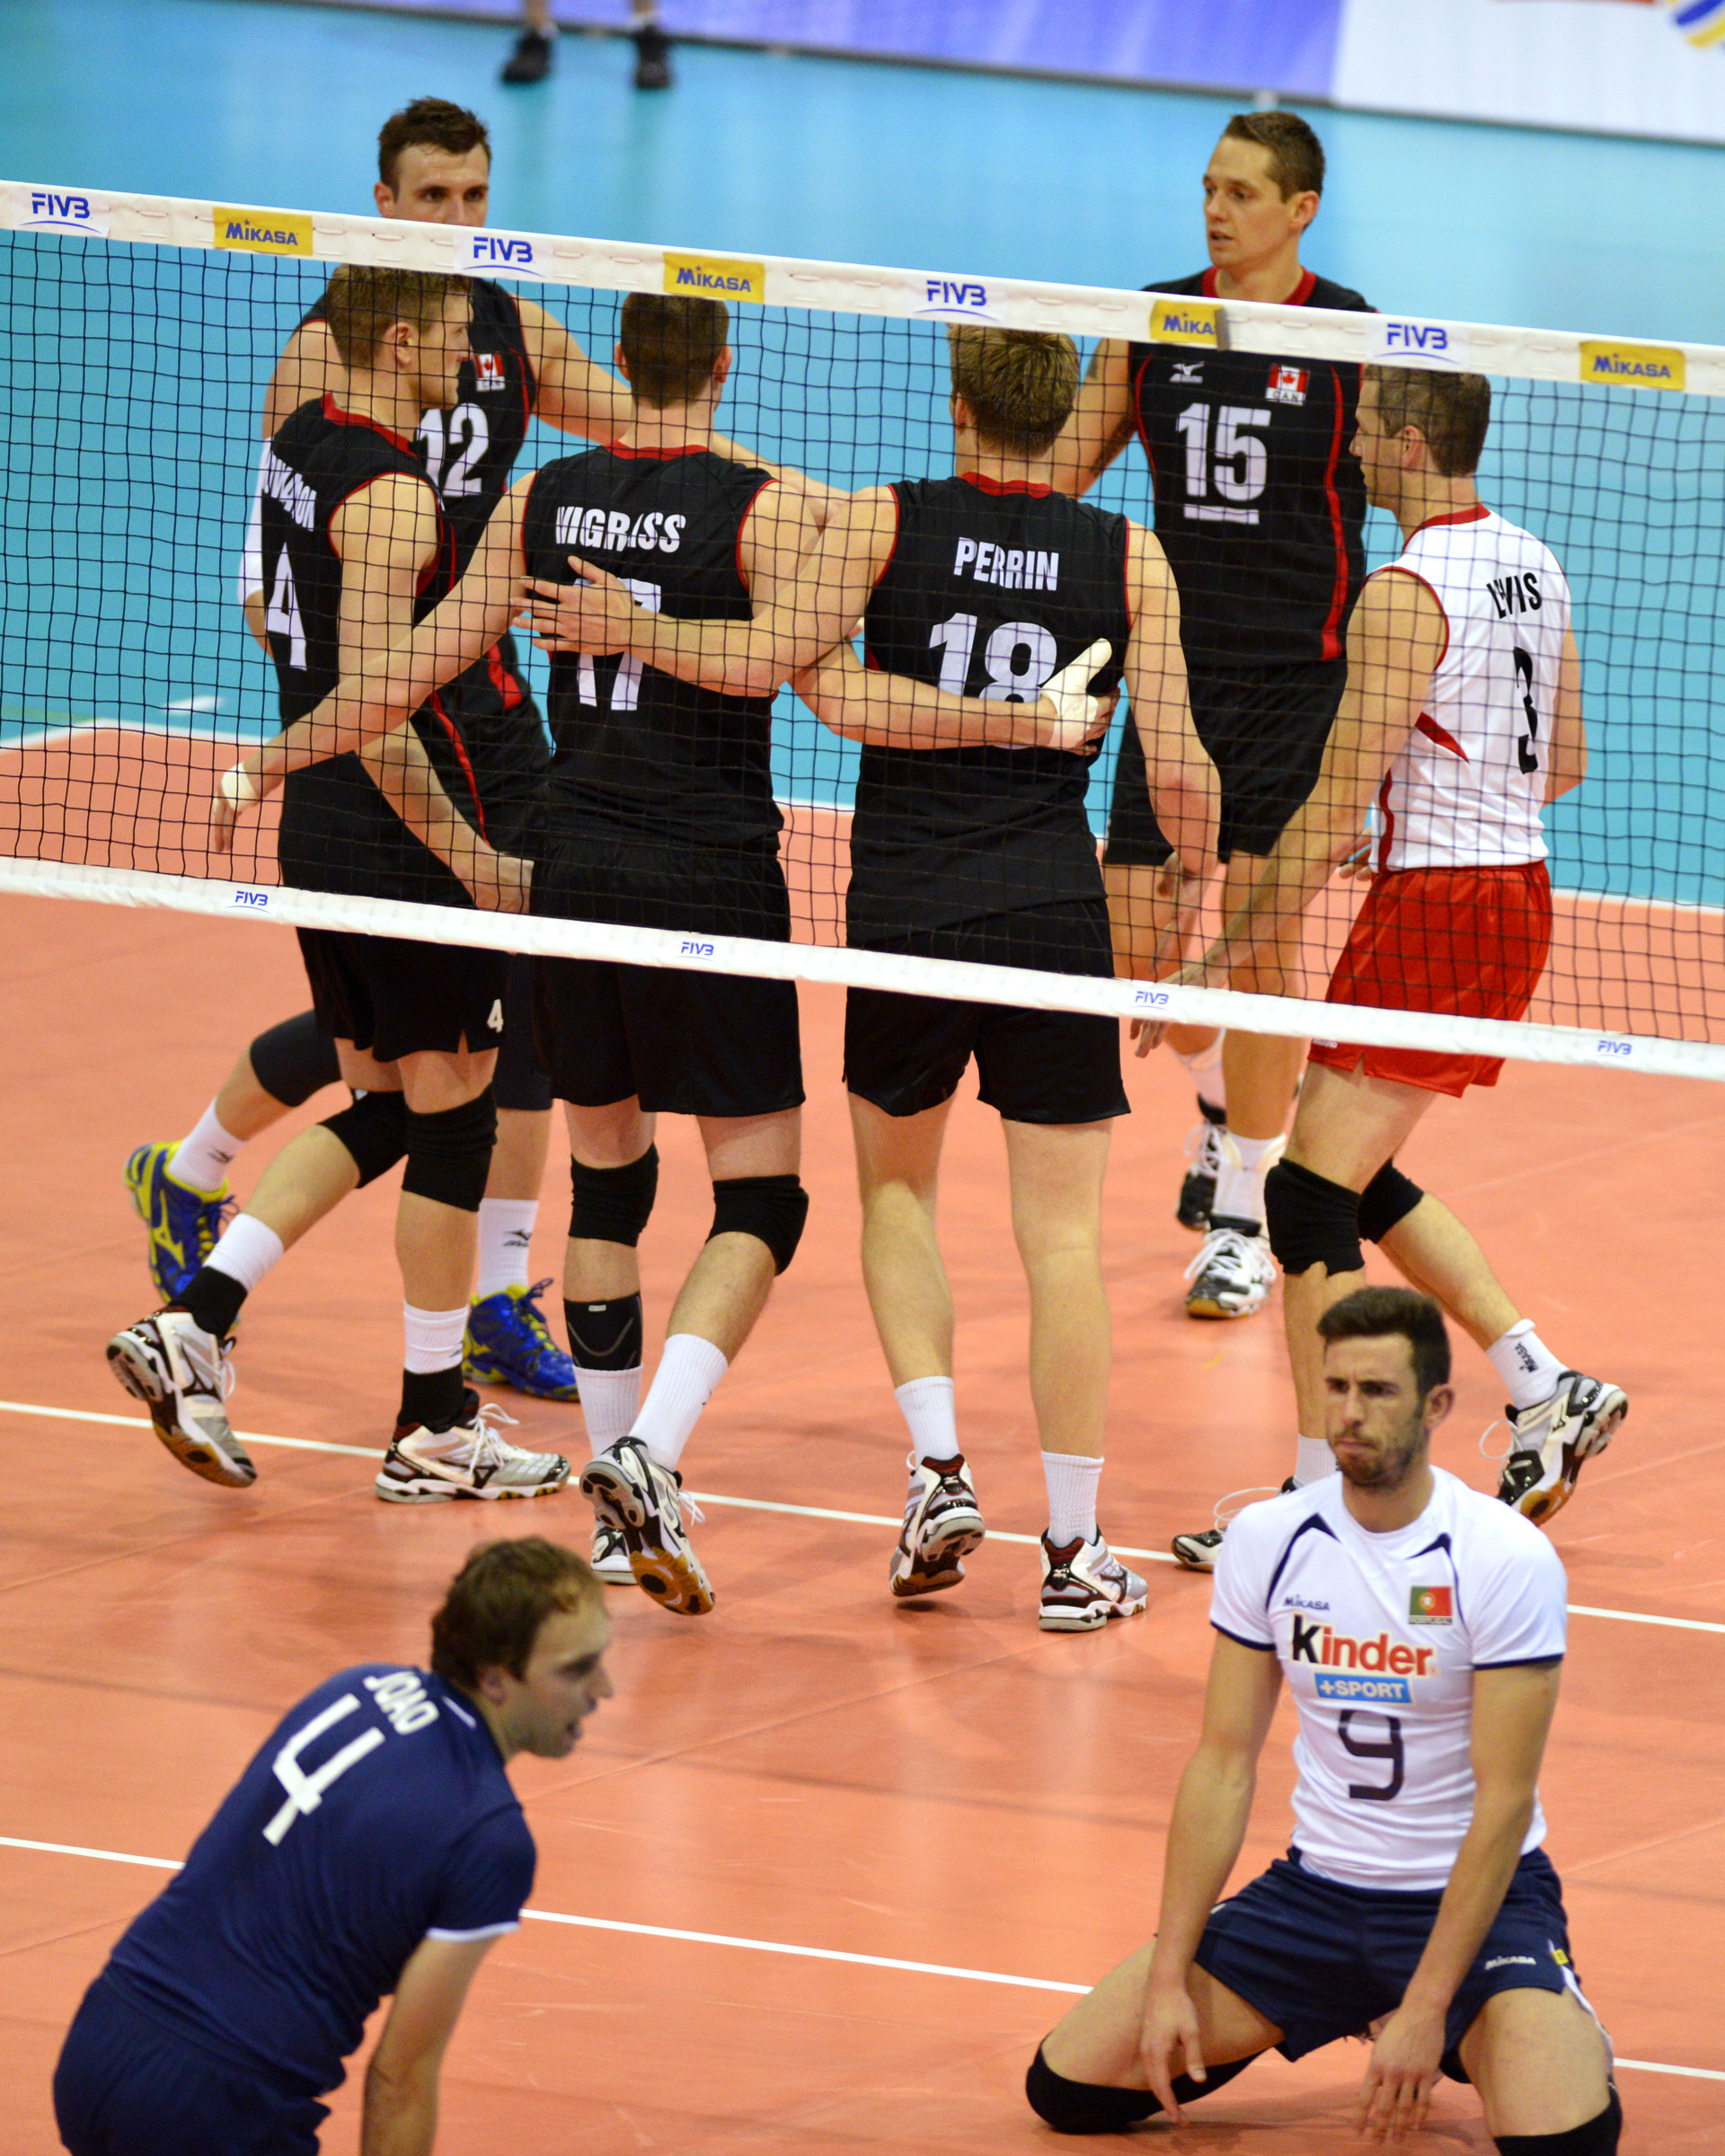 Canada gets together during their win against Portugal Photo: Phil McCallum, Volleyball Canada, FIVB